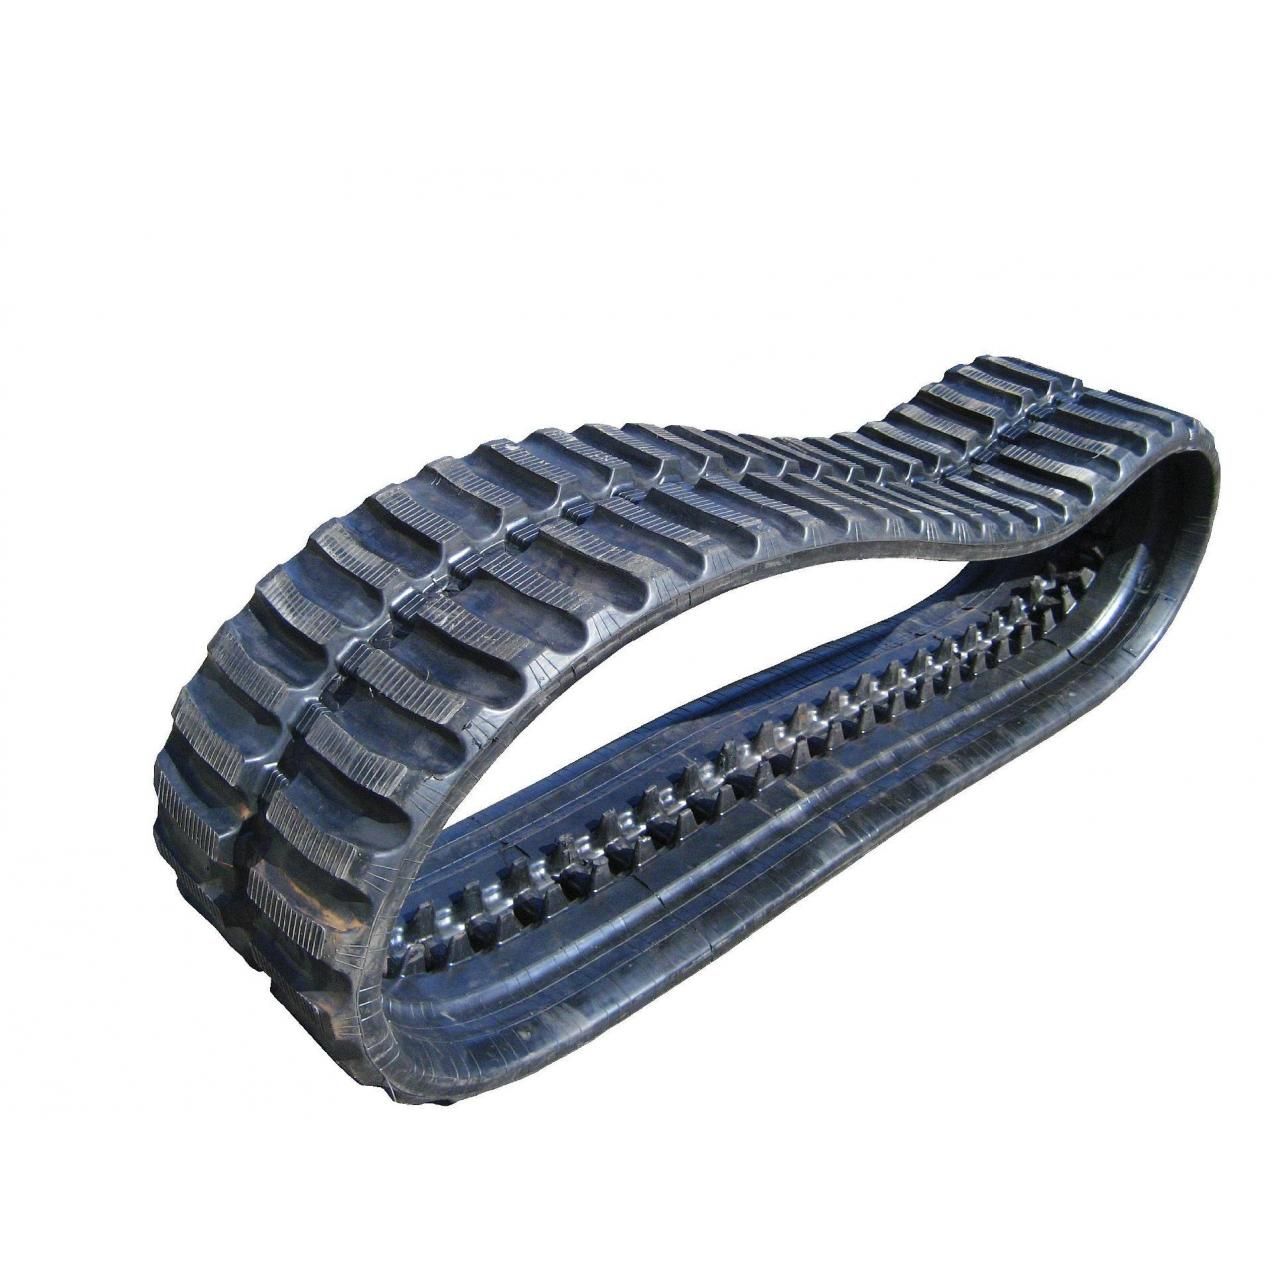 Rubber Tracks for Excavator,Grader,Combination Harvester